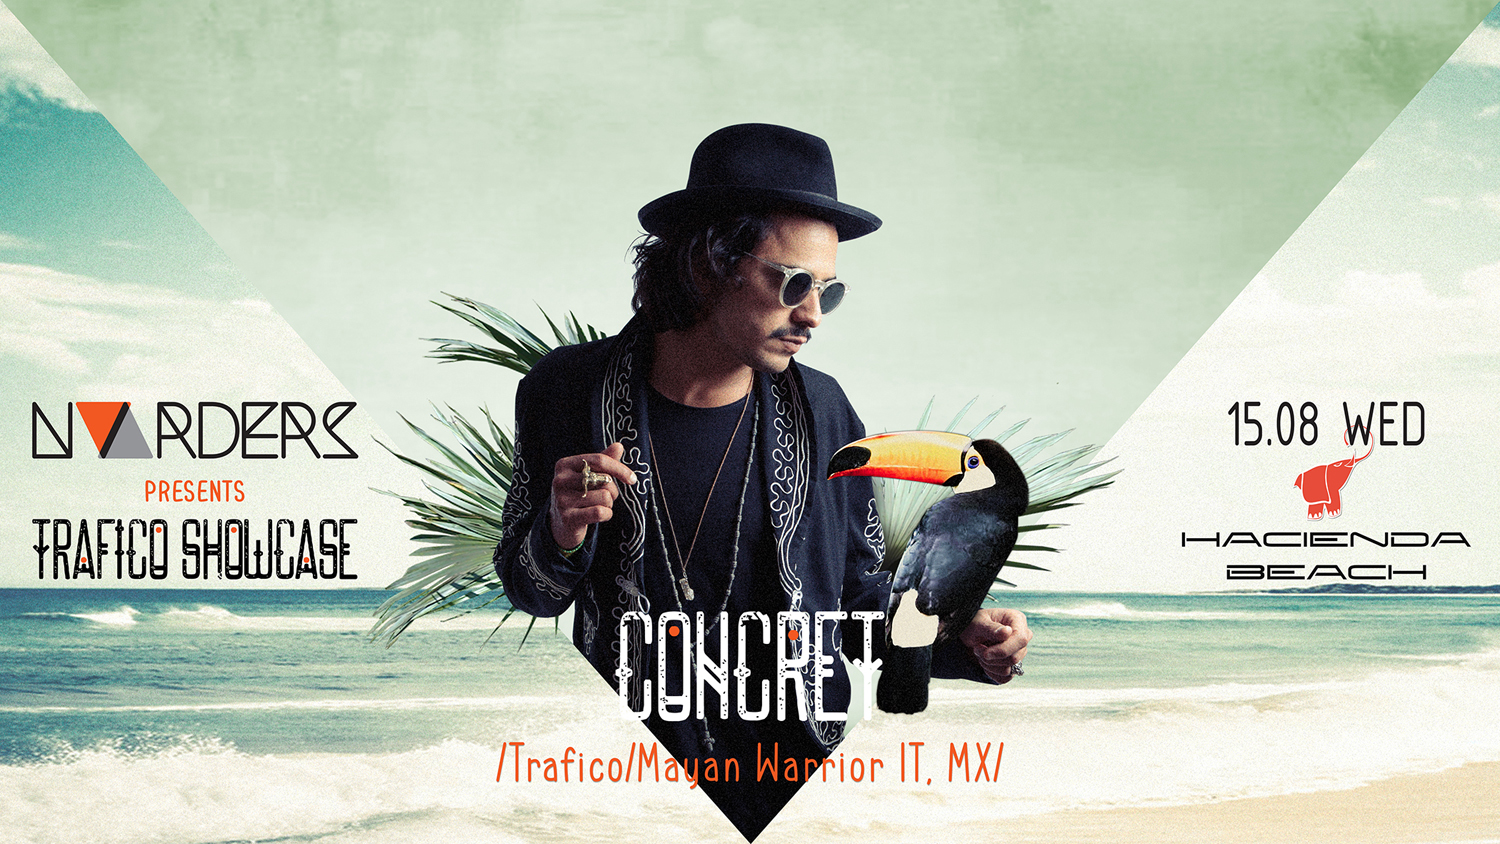 Concret и No Orders x Playa Stories пренасят магията на Burning man в Hacienda Beach